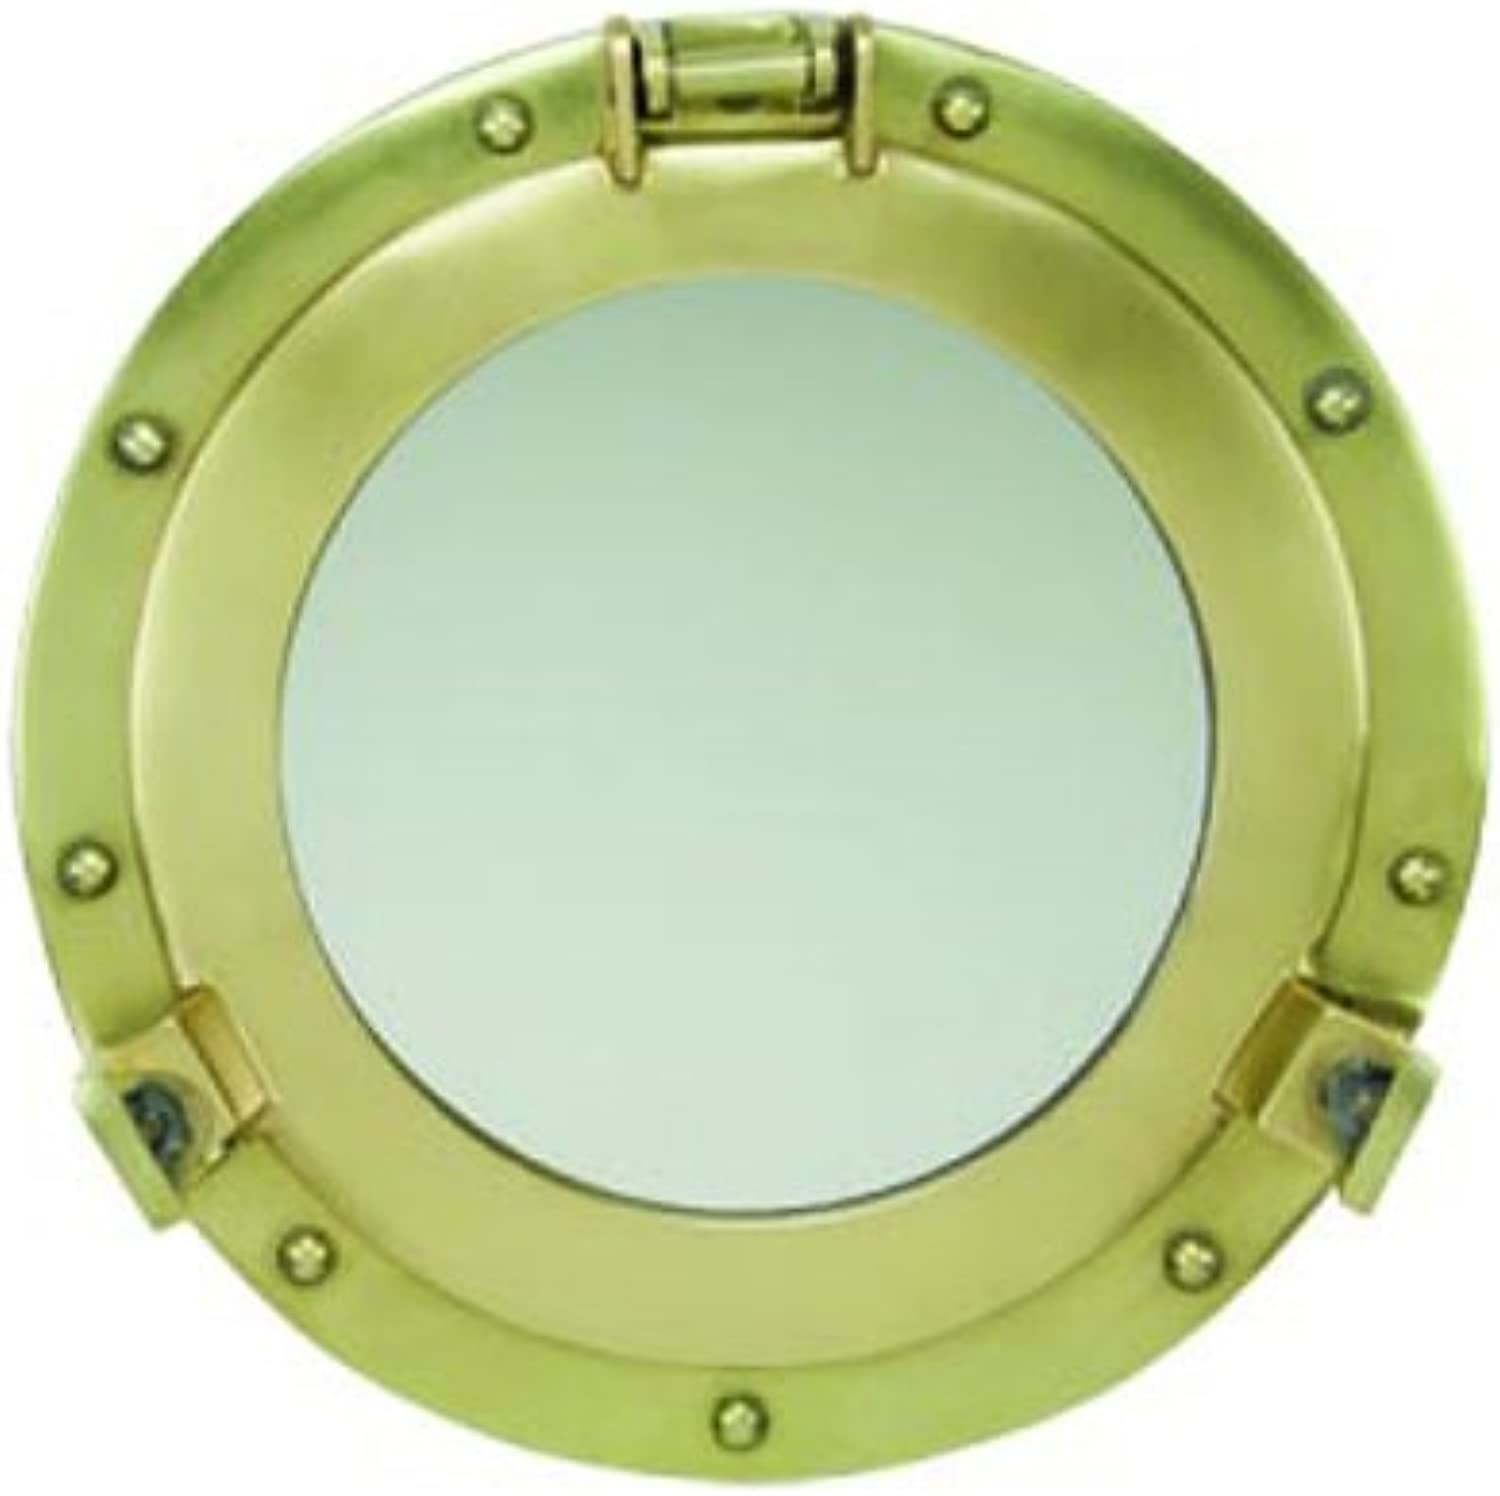 17  Antique Brass Porthole Mirror by Moby Dick